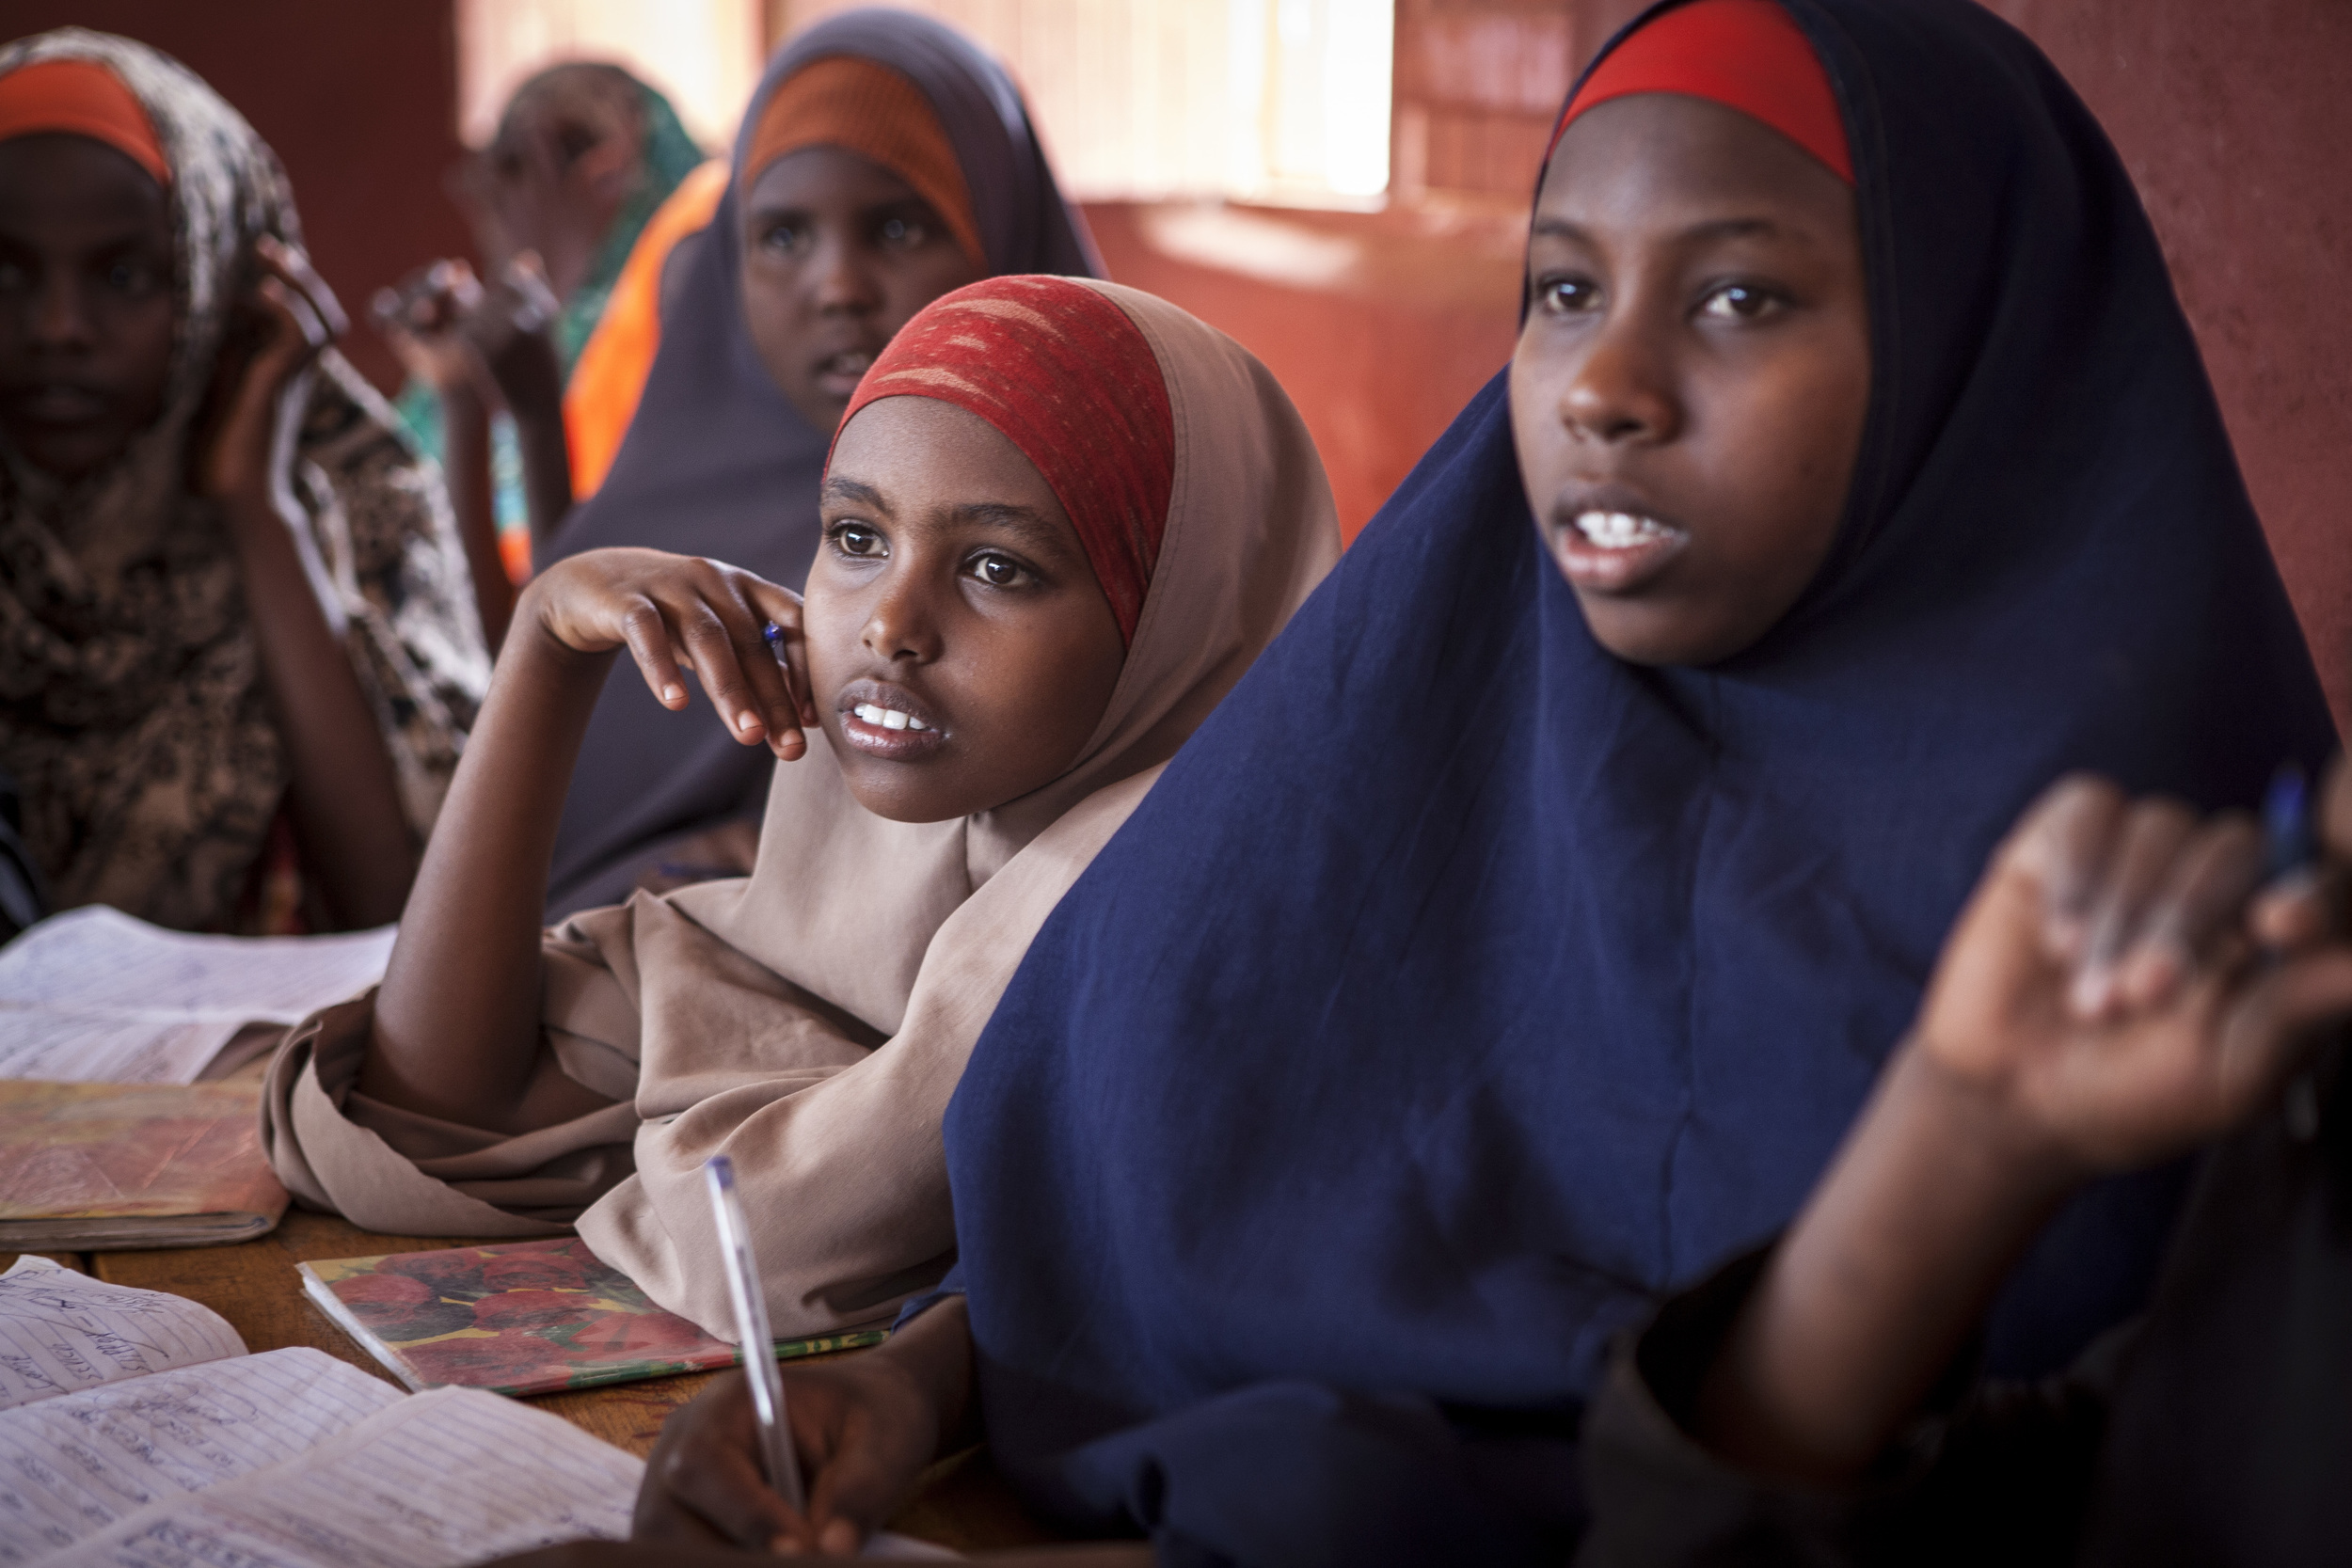 Somali refugees attending school in a refugee camp in Ethiopia.©Save the Children